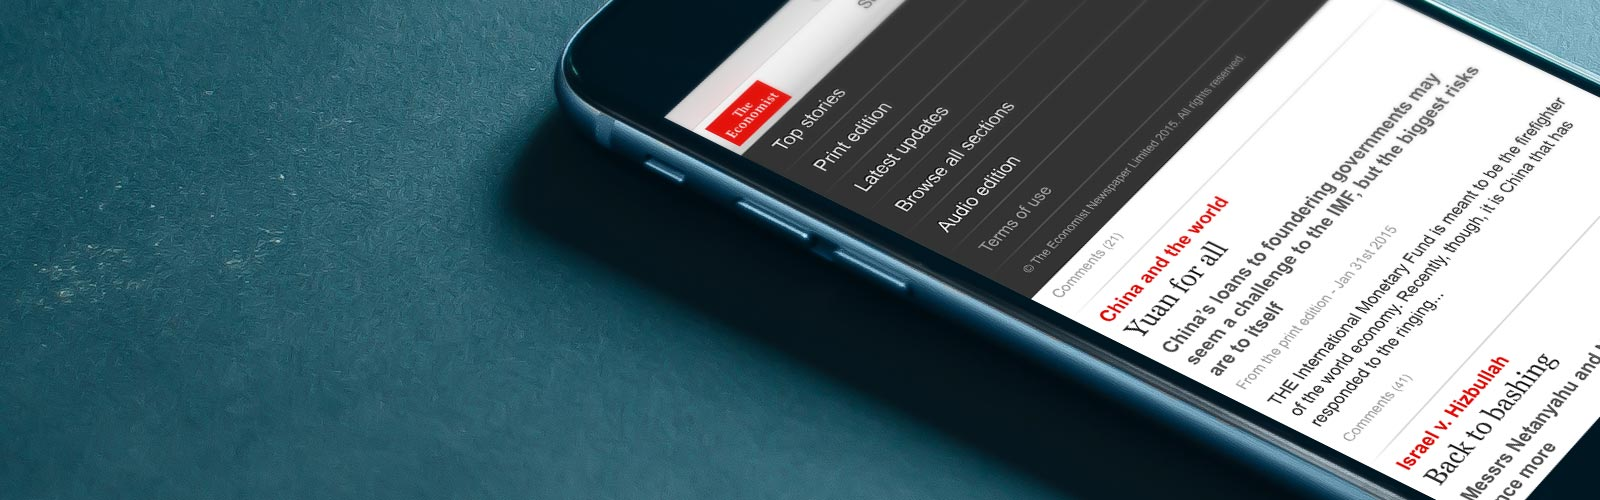 Economist Espresso app on a smartphone screen